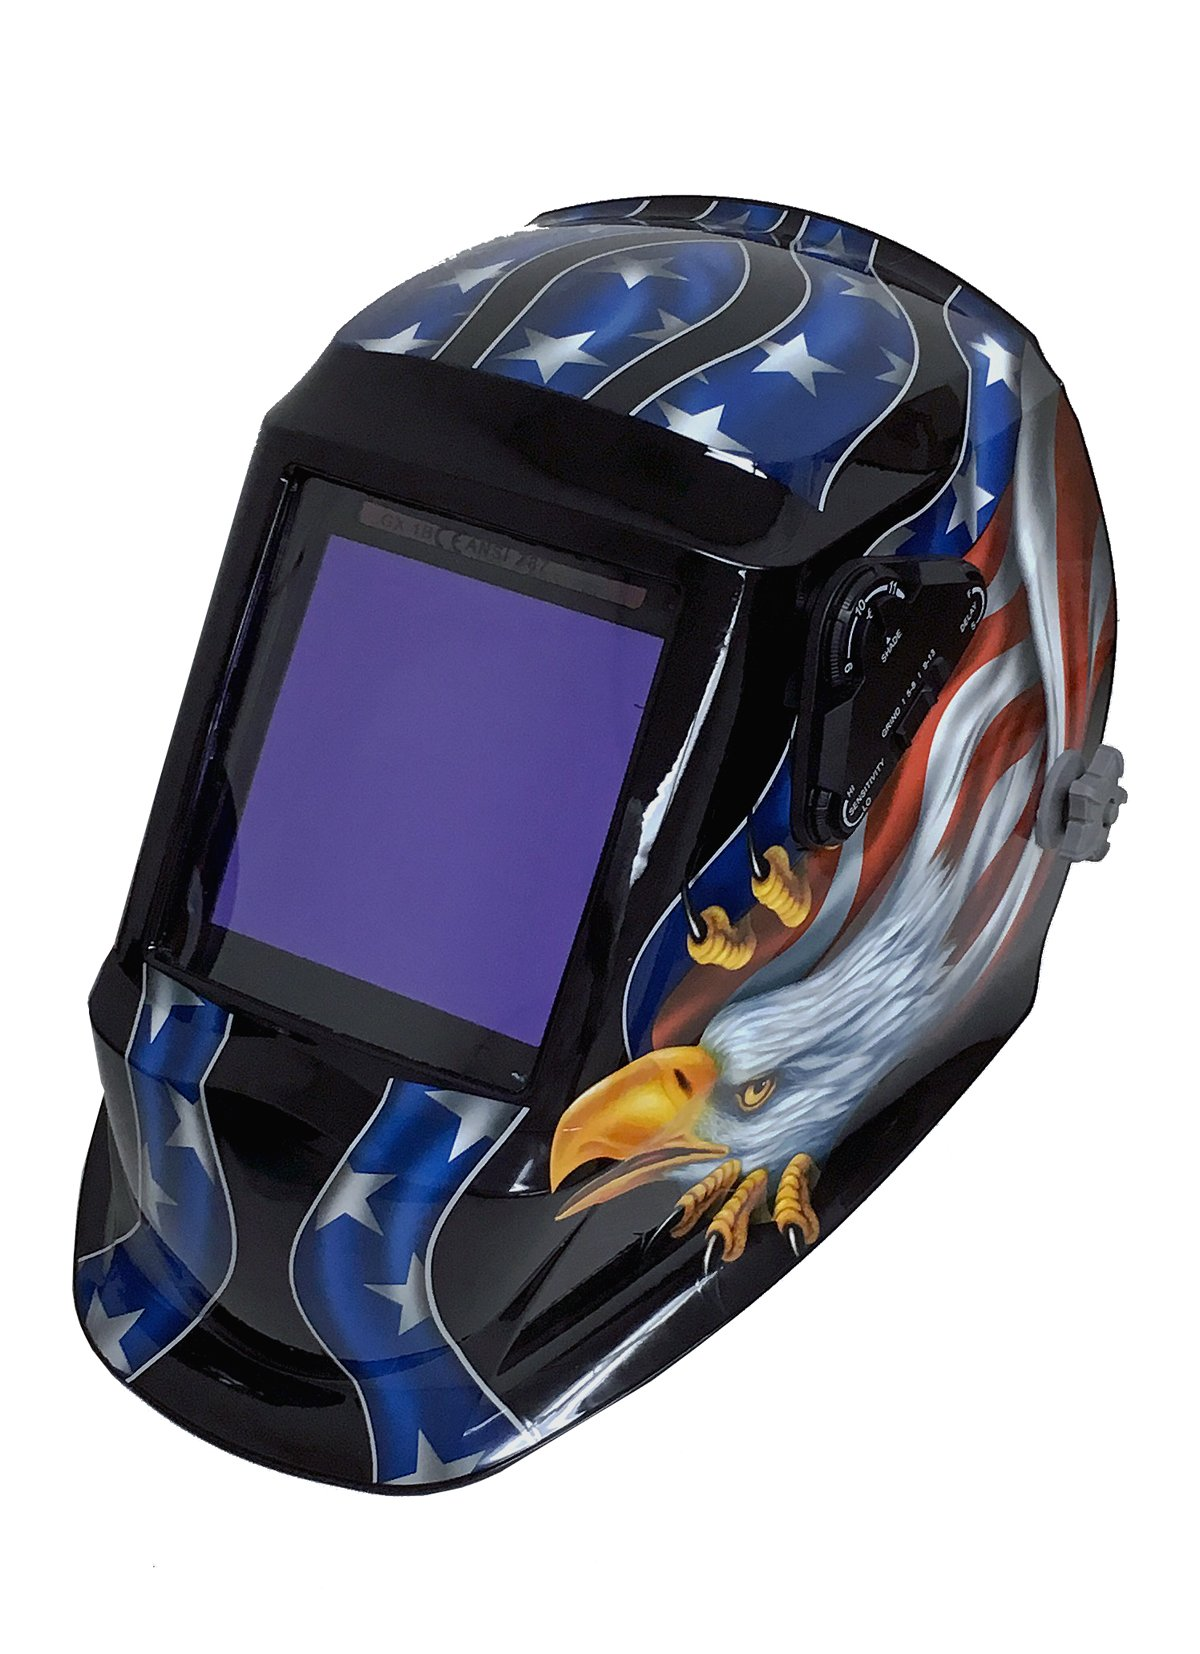 Instapark ADF Series GX990T Solar Powered Auto Darkening Welding Helmet with 4 Optical Sensors, 3.94'' X 3.86'' Viewing Area and Adjustable Shade Range #5 - #13 American Eagle by Instapark